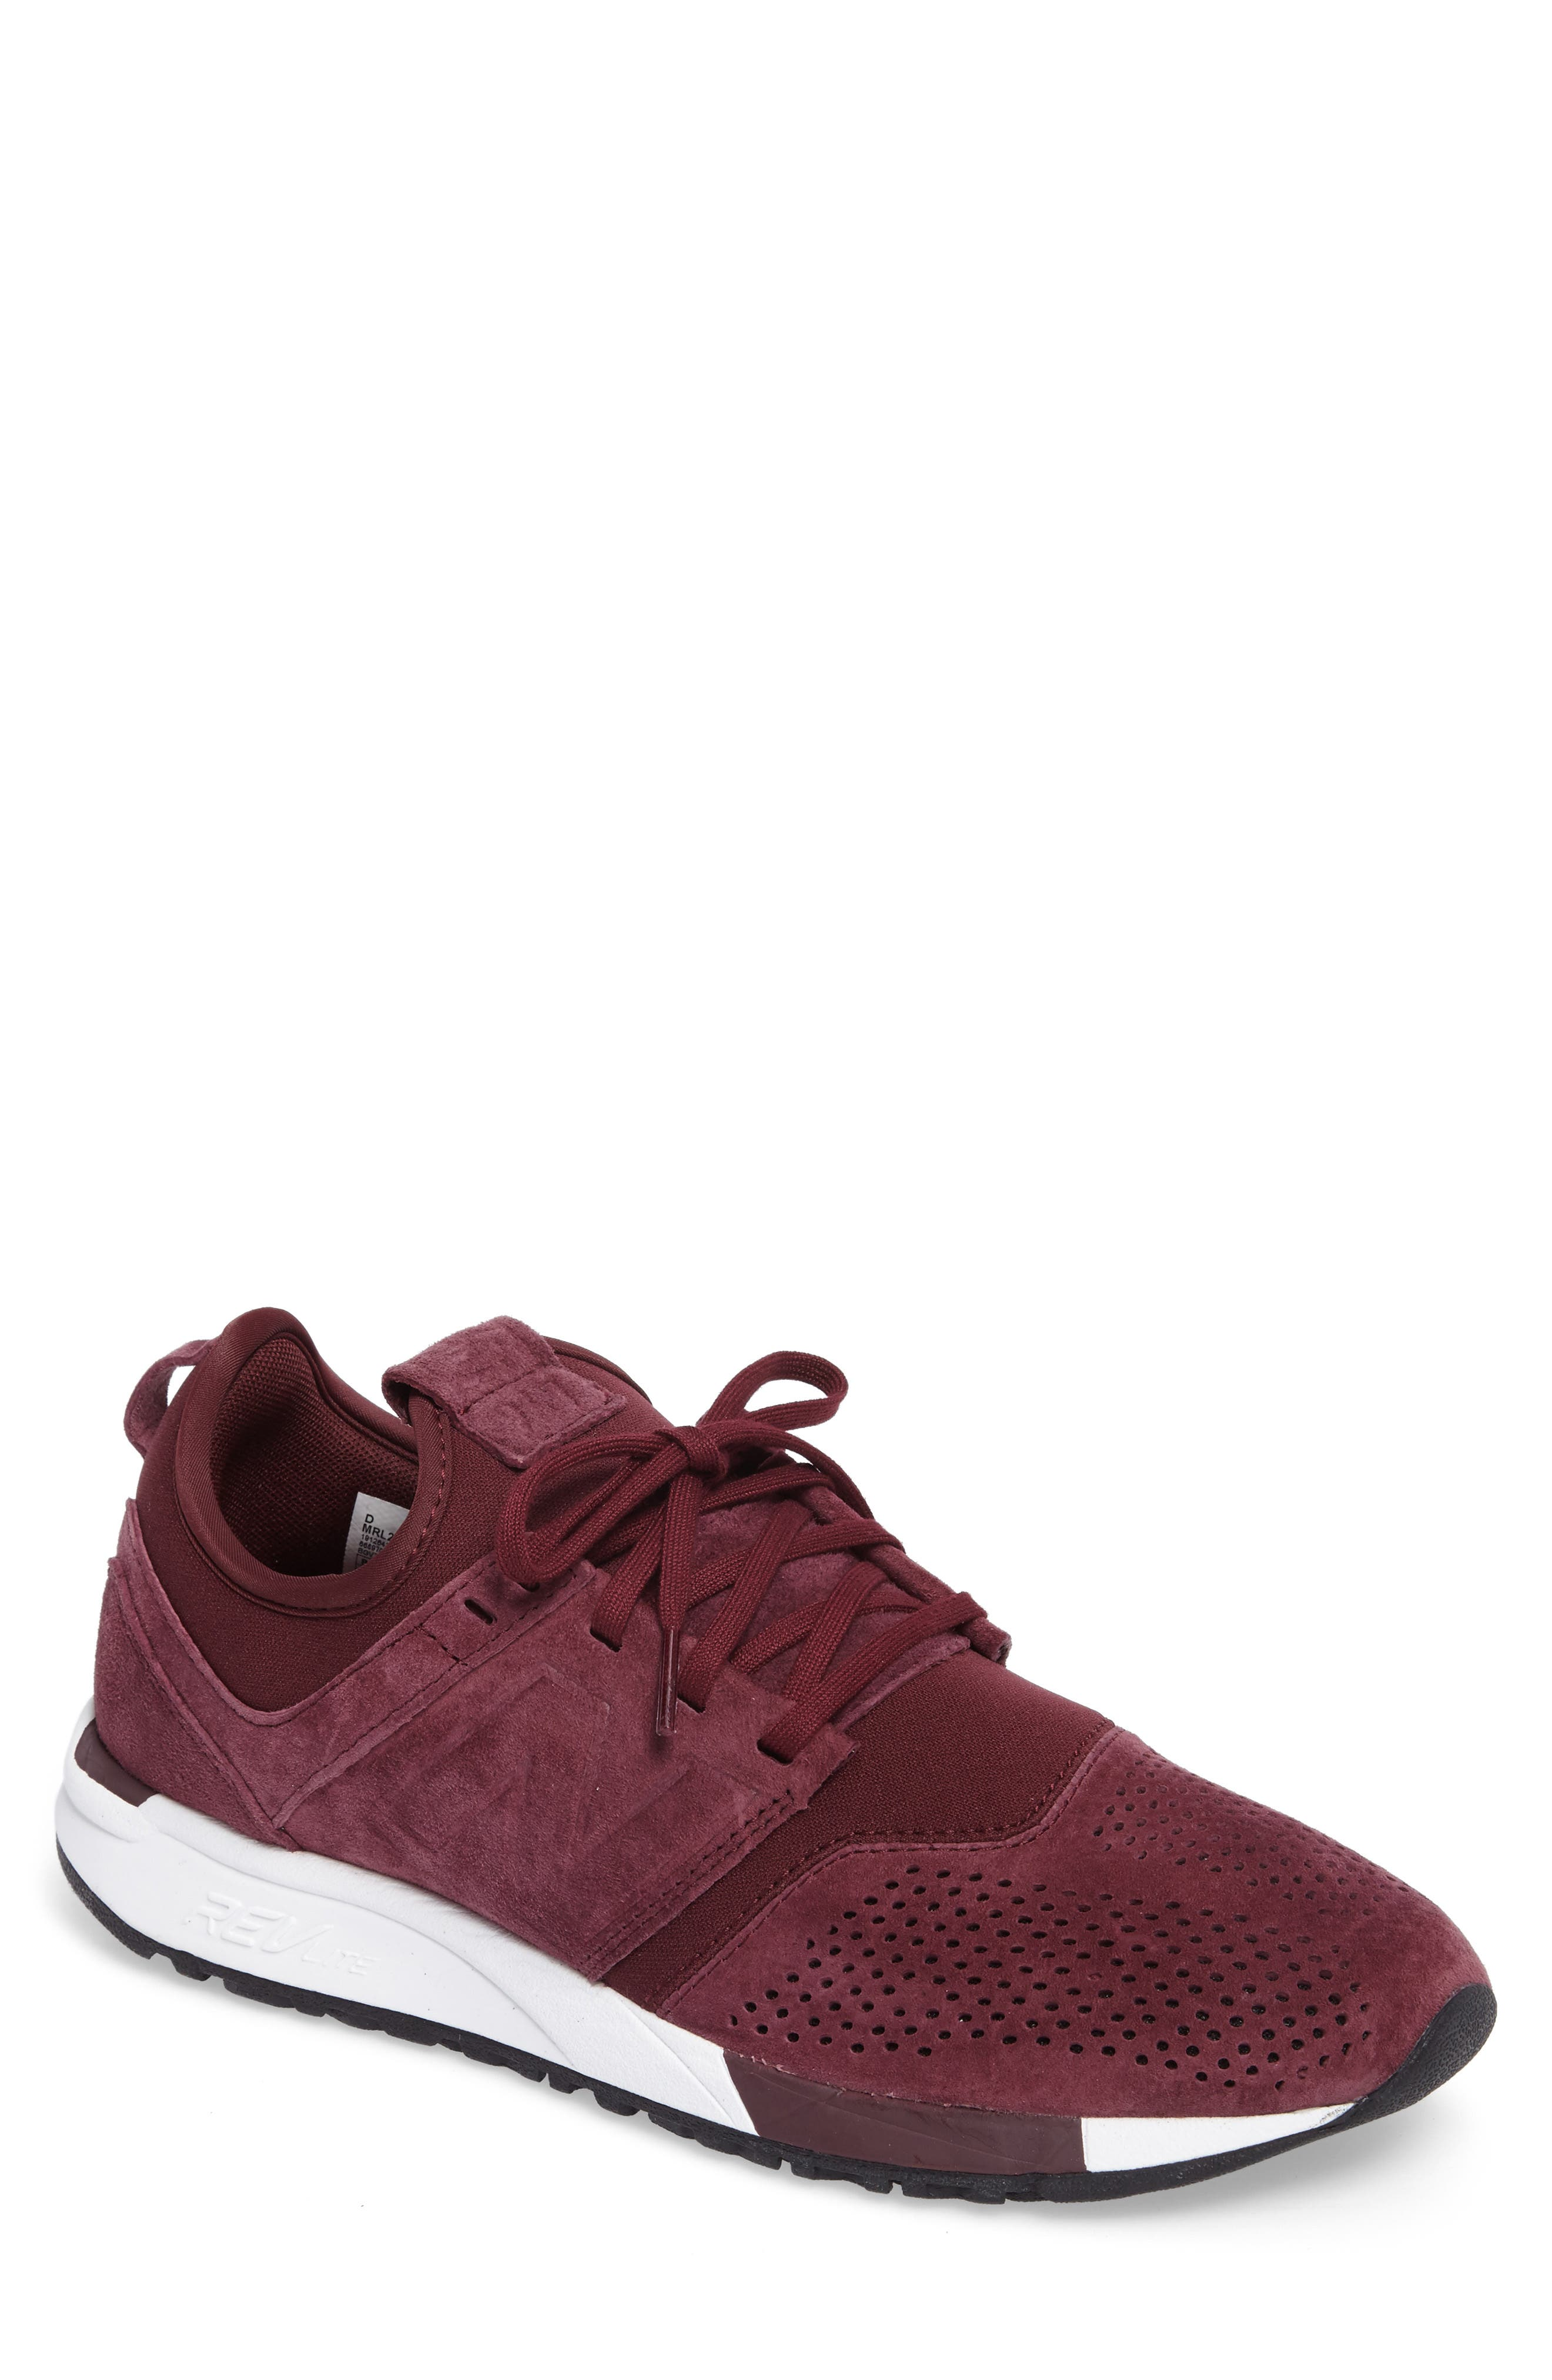 New Balance 247 Sneaker (Men)